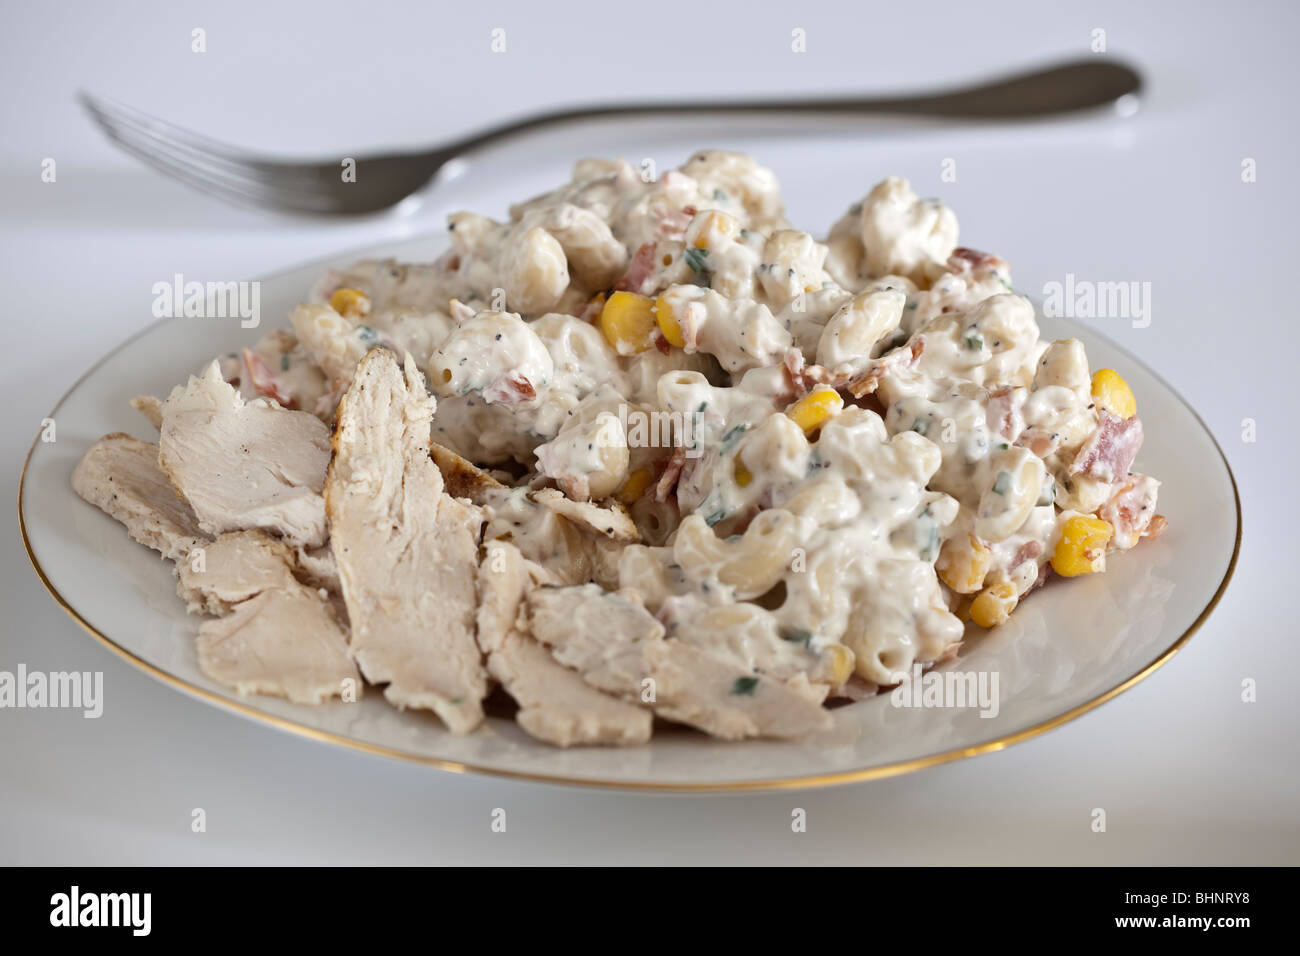 Chicken and bacon Pasta in a mayonnaise sauce on a white plate - Stock Image